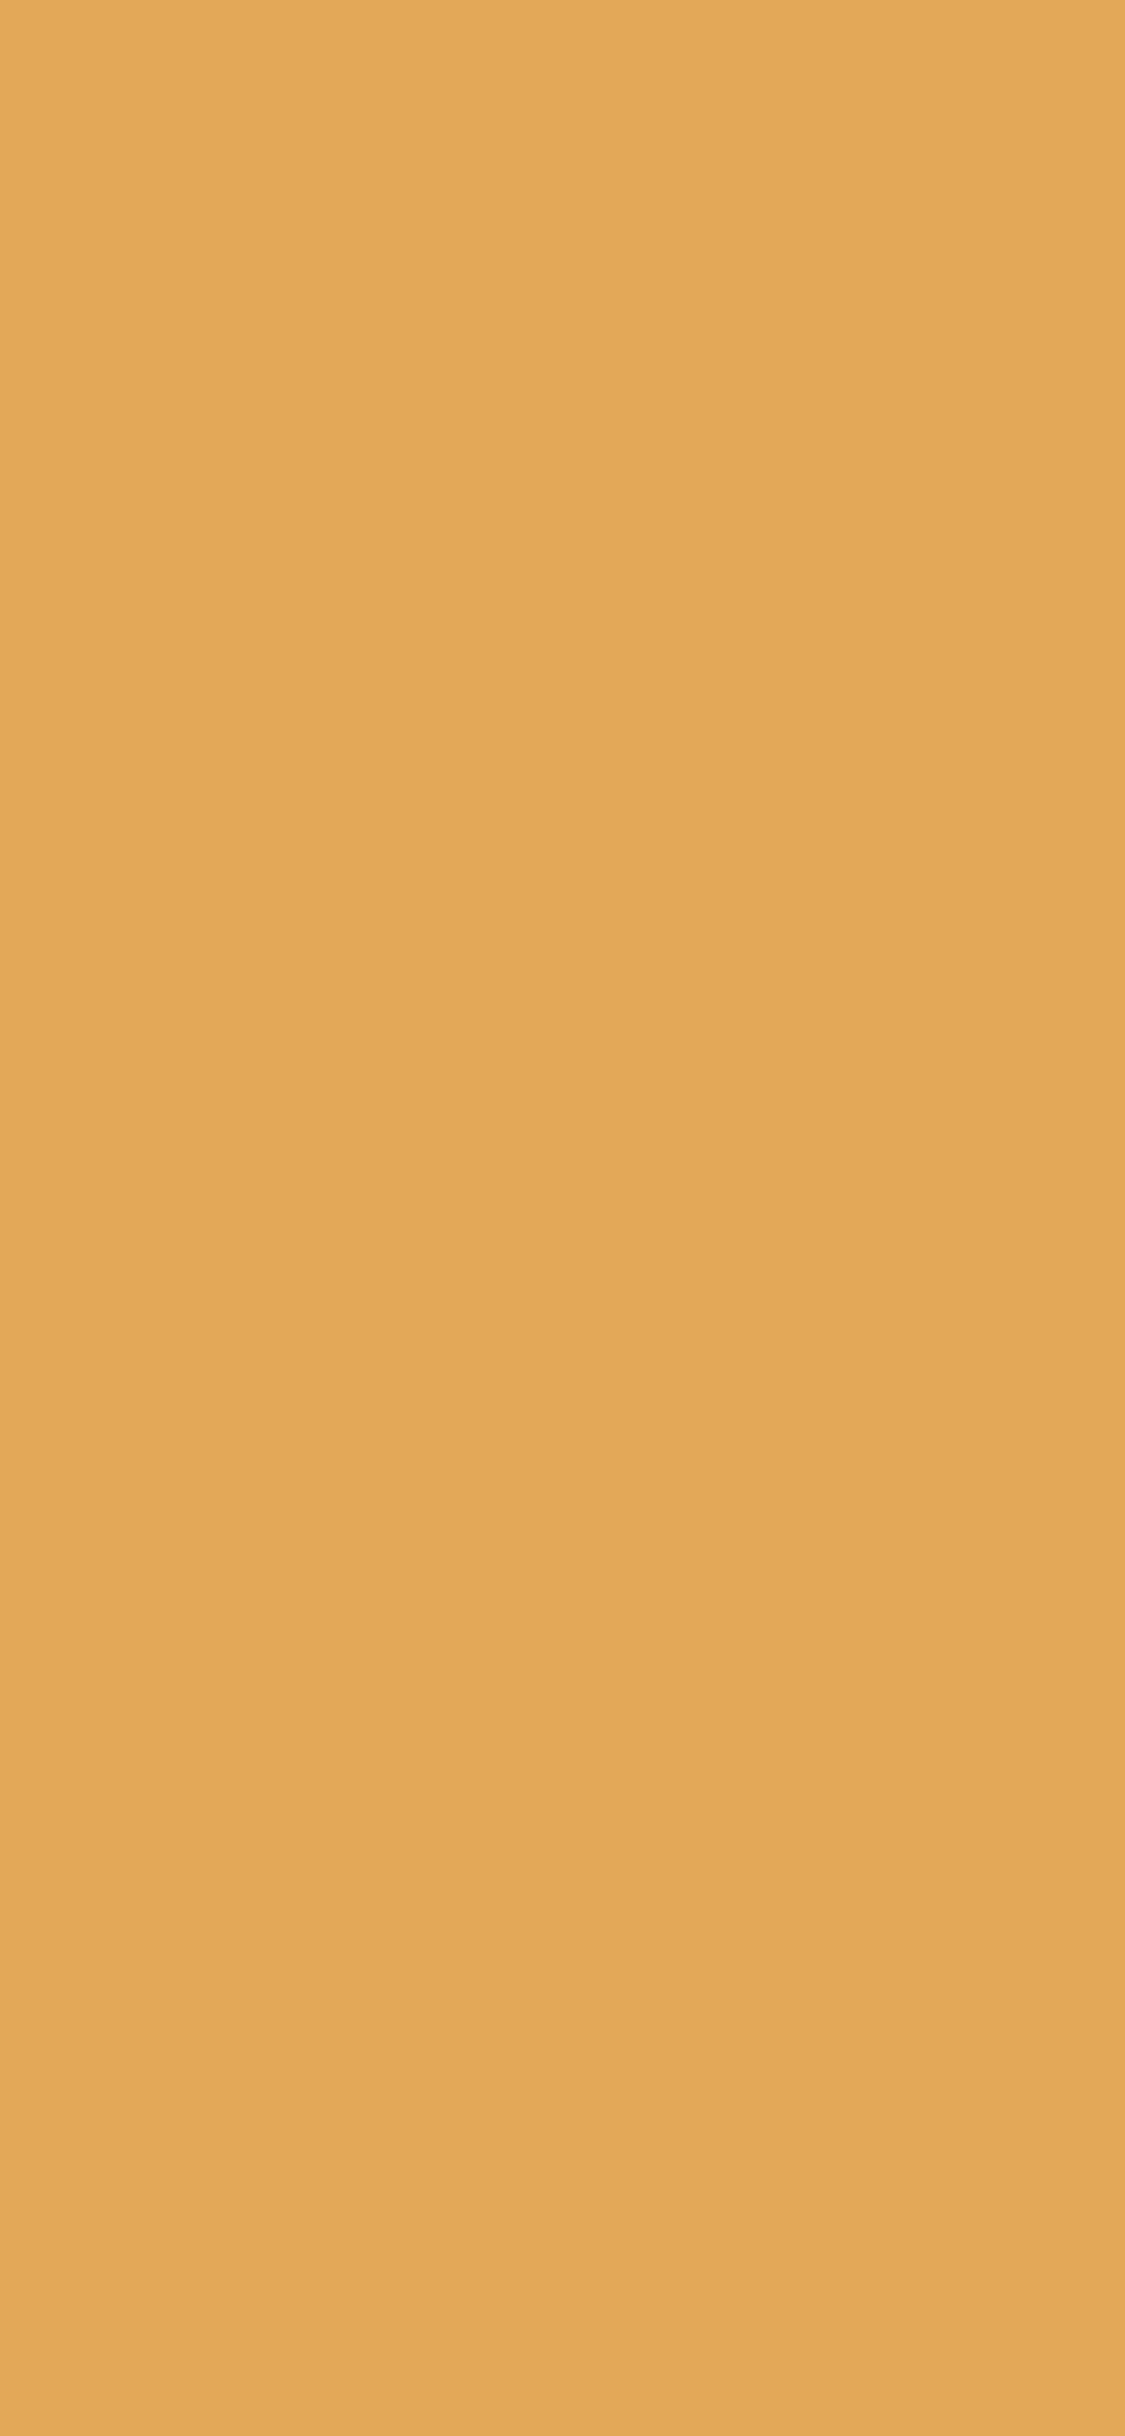 1125x2436 Indian Yellow Solid Color Background